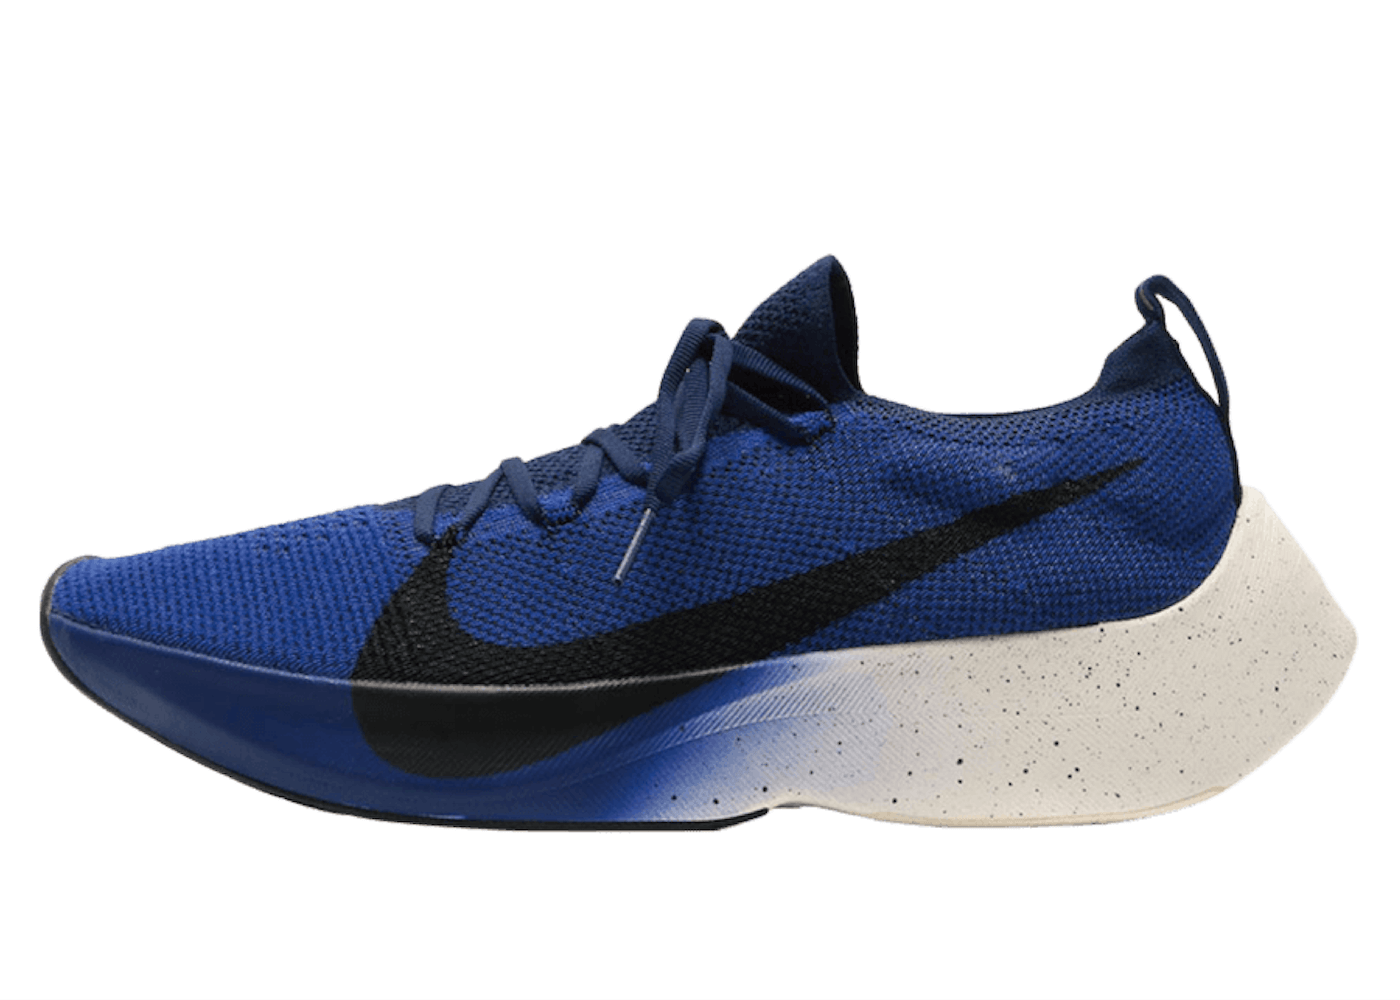 NIKE VAPOR STREET FLYKNIT DEEP ROYAL/BLACK-COLLEGE NAVY-SAILの写真